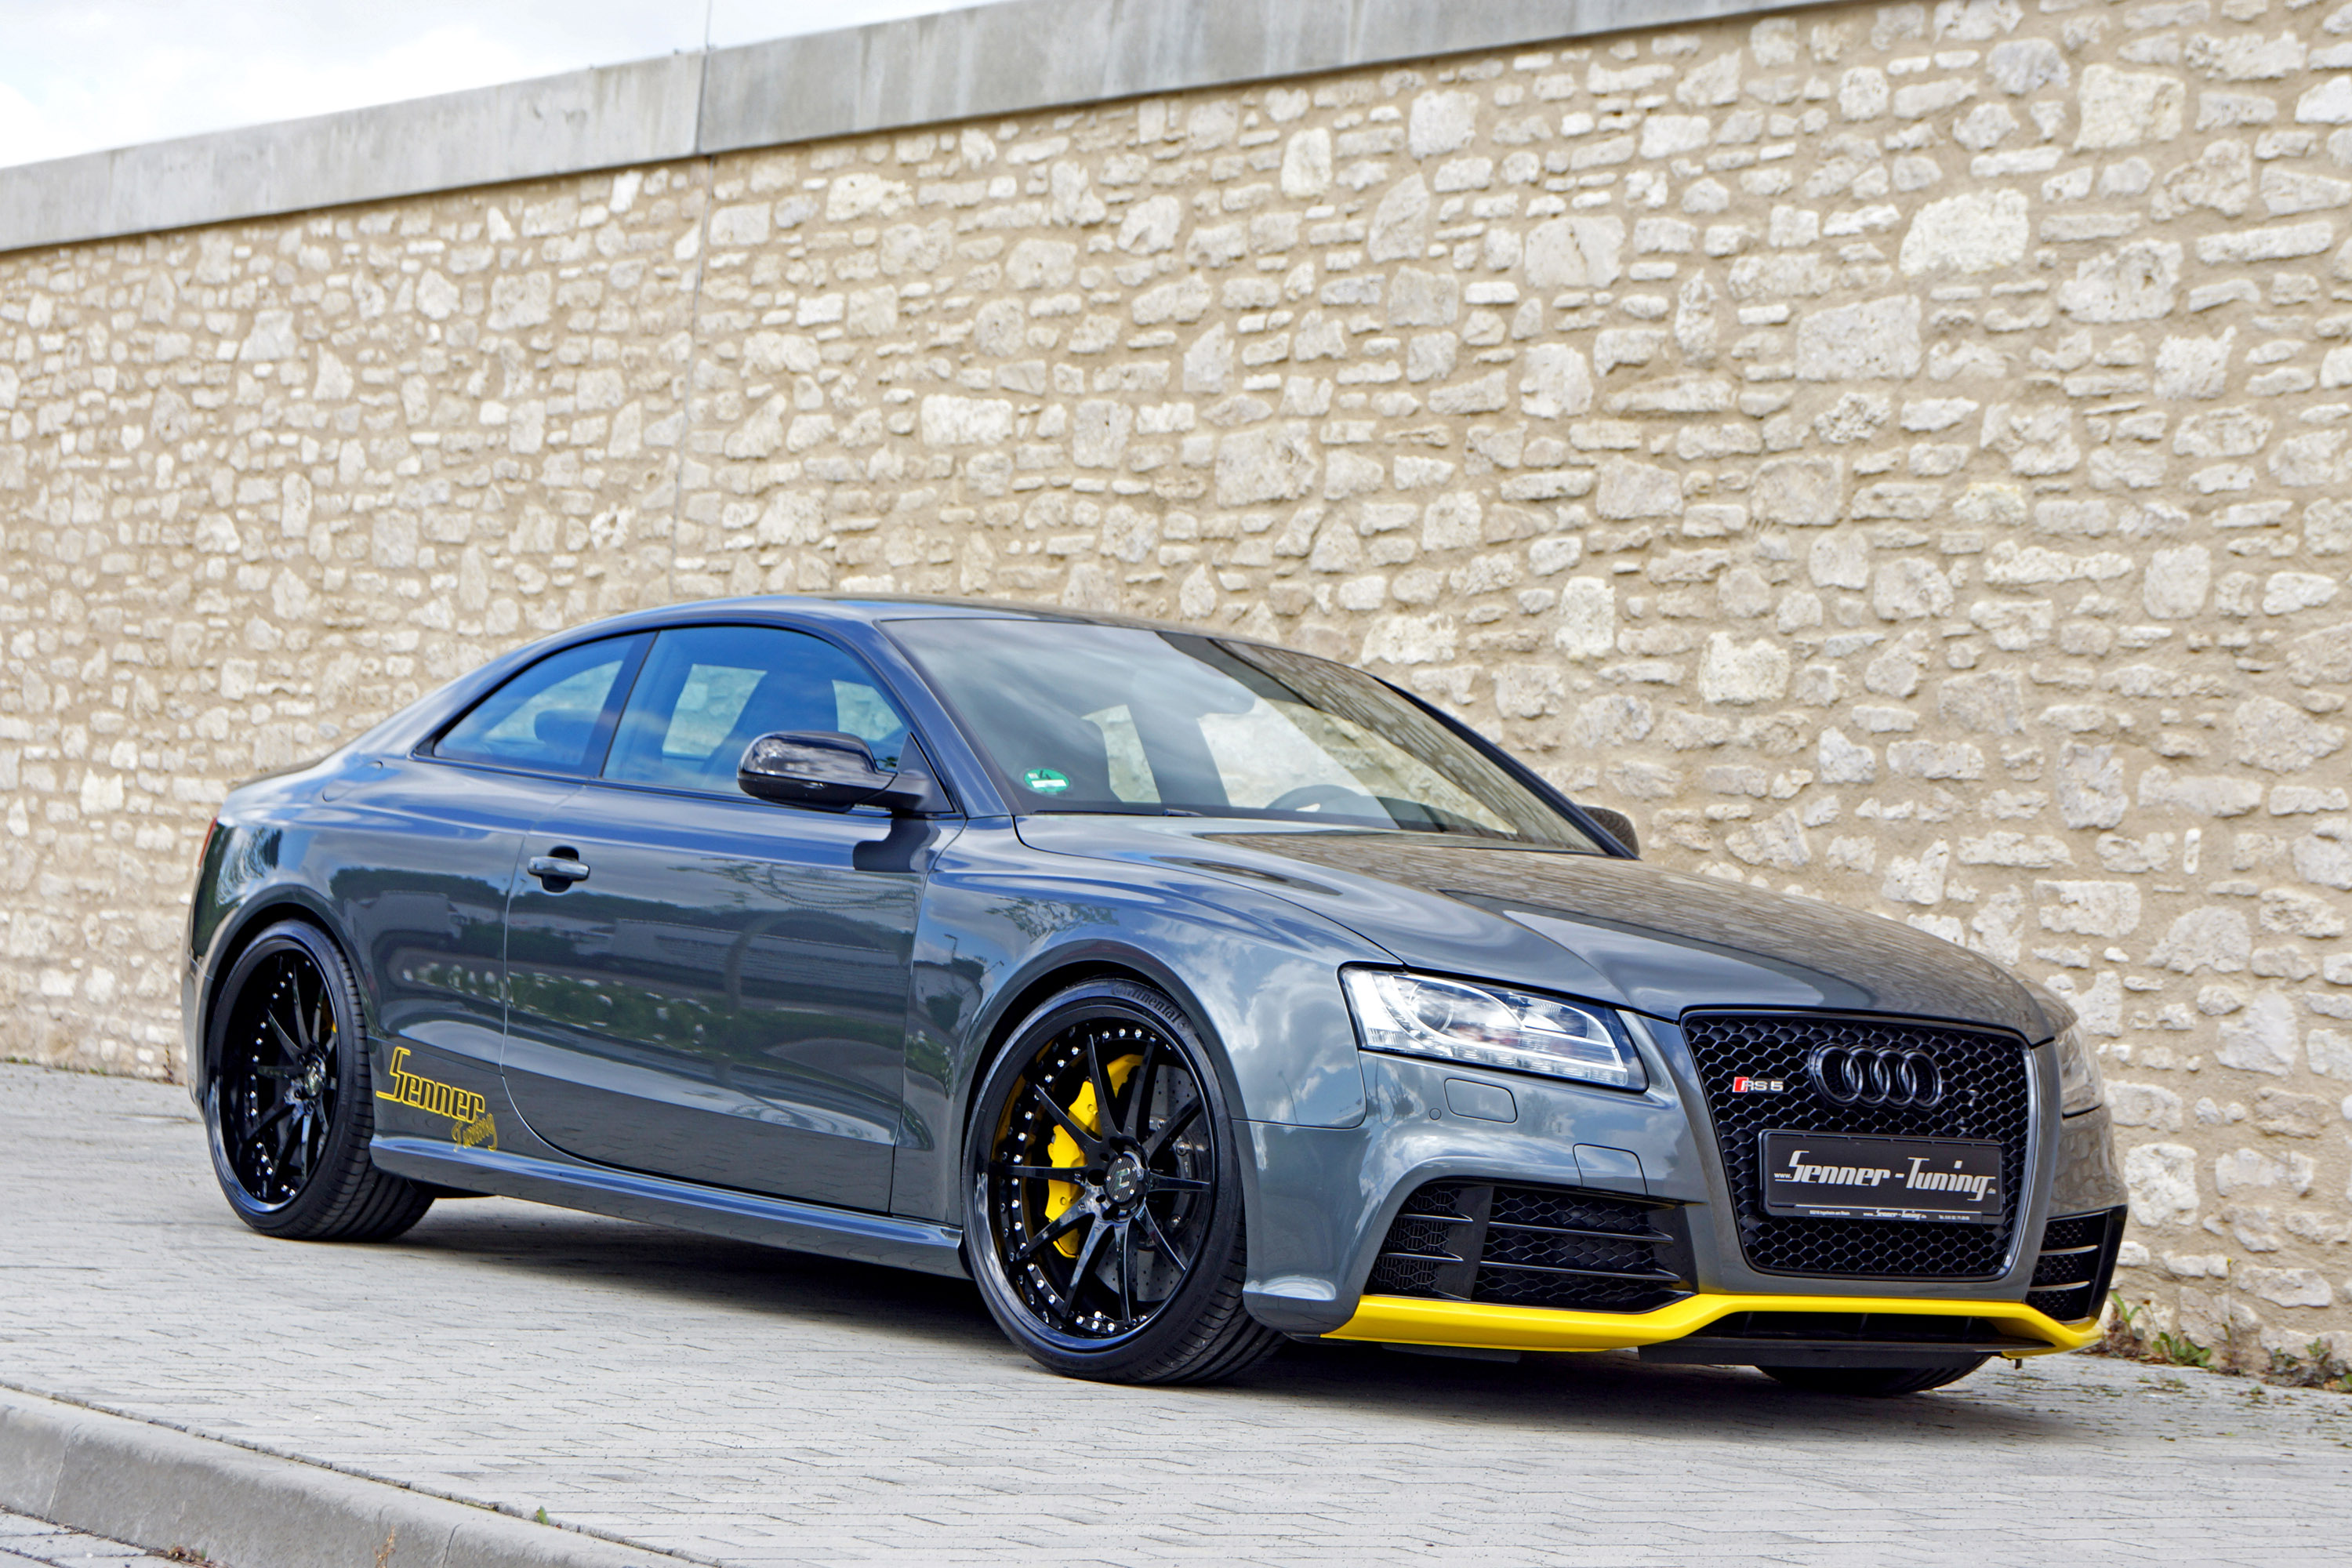 2014 Senner Tuning Audi RS5 Coupe - Latest Audi News